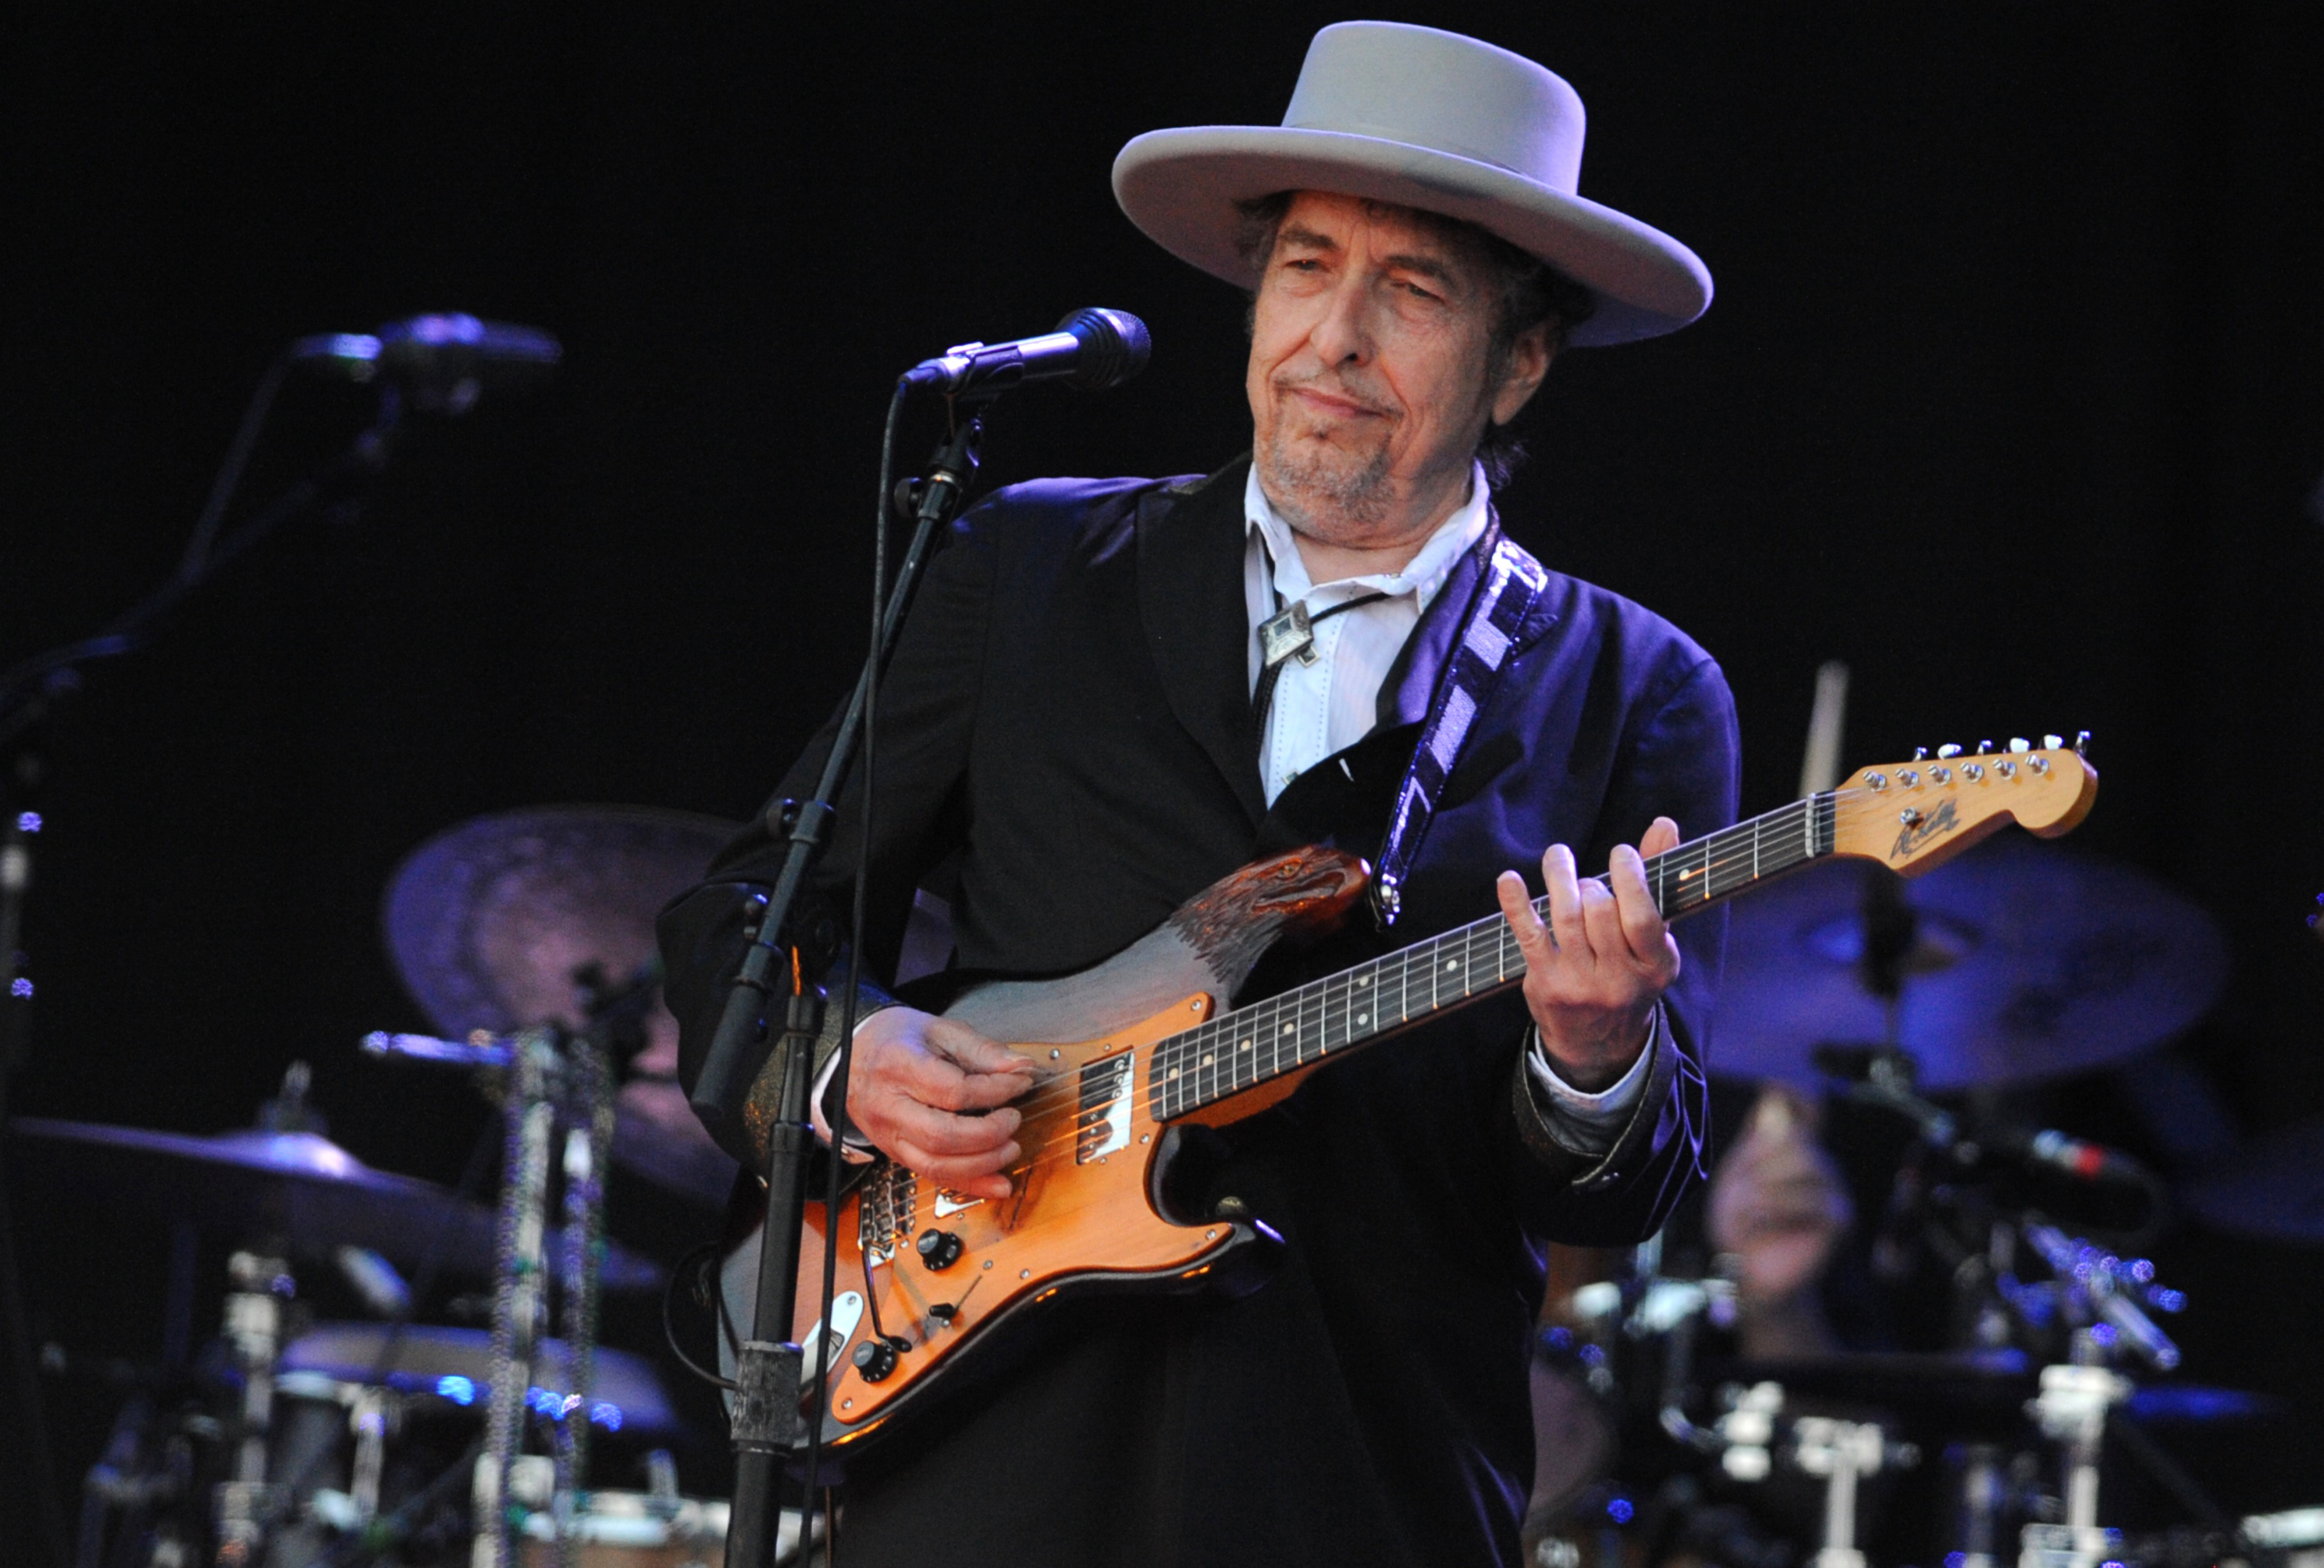 Bob Dylan, pictured in July, seemed invigorated by new blood in his band, which performed Friday at University at Buffalo's Alumni Arena.